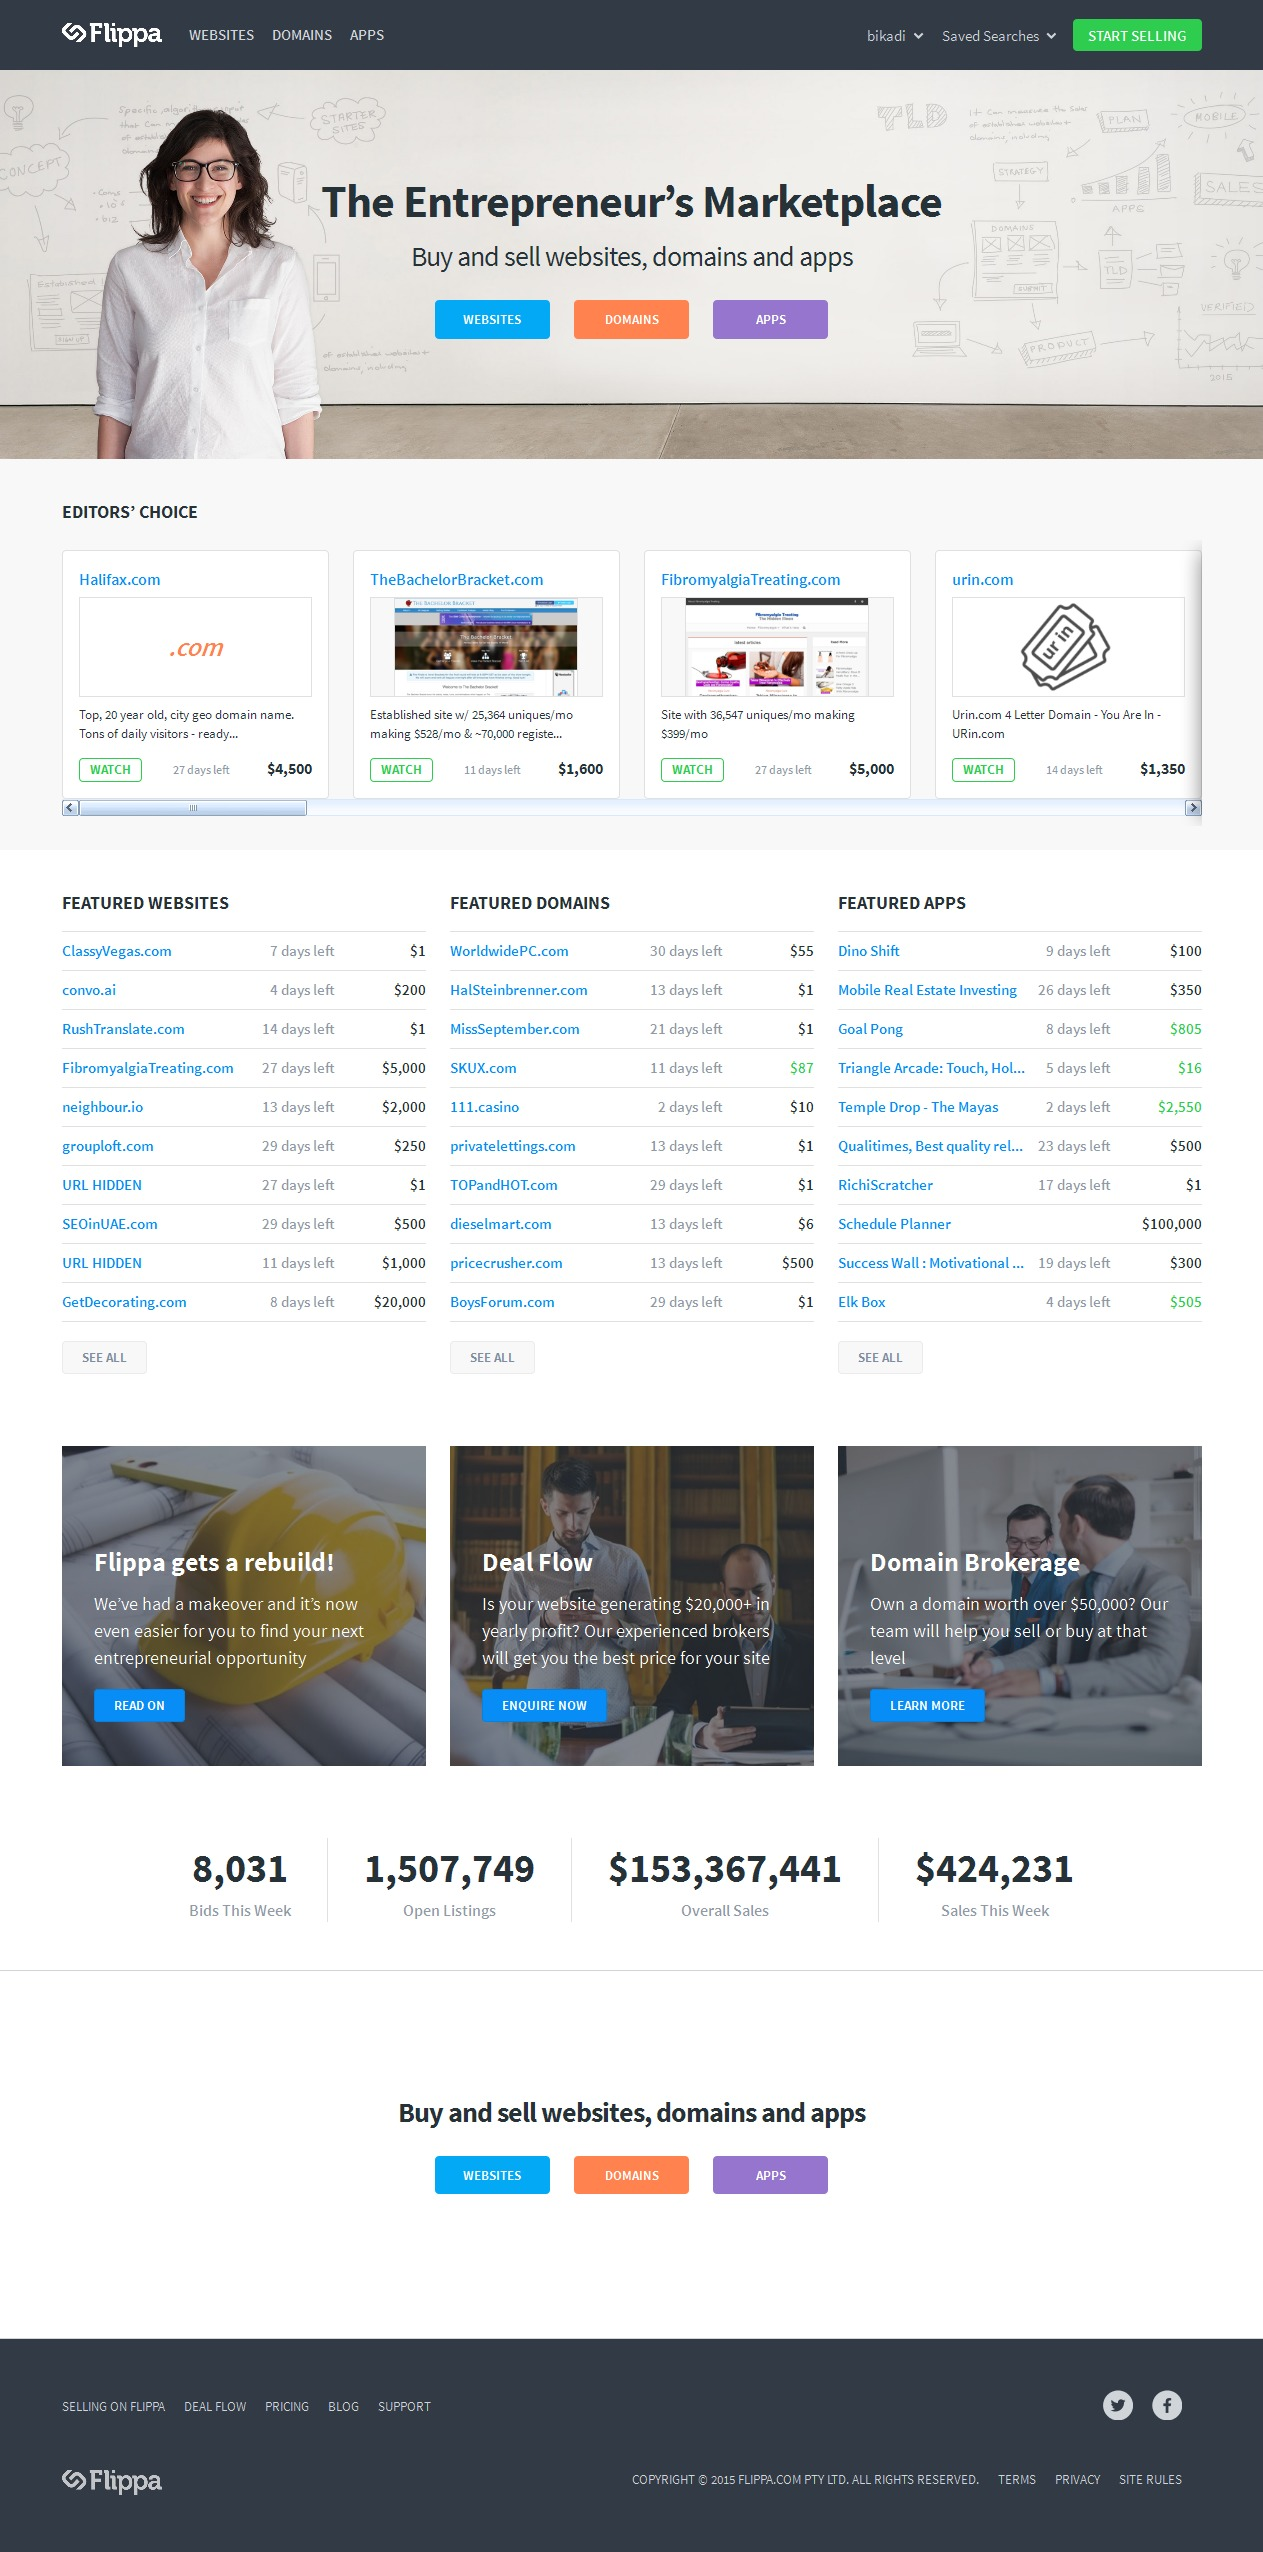 The redesigned Flippa homepage got a makeover